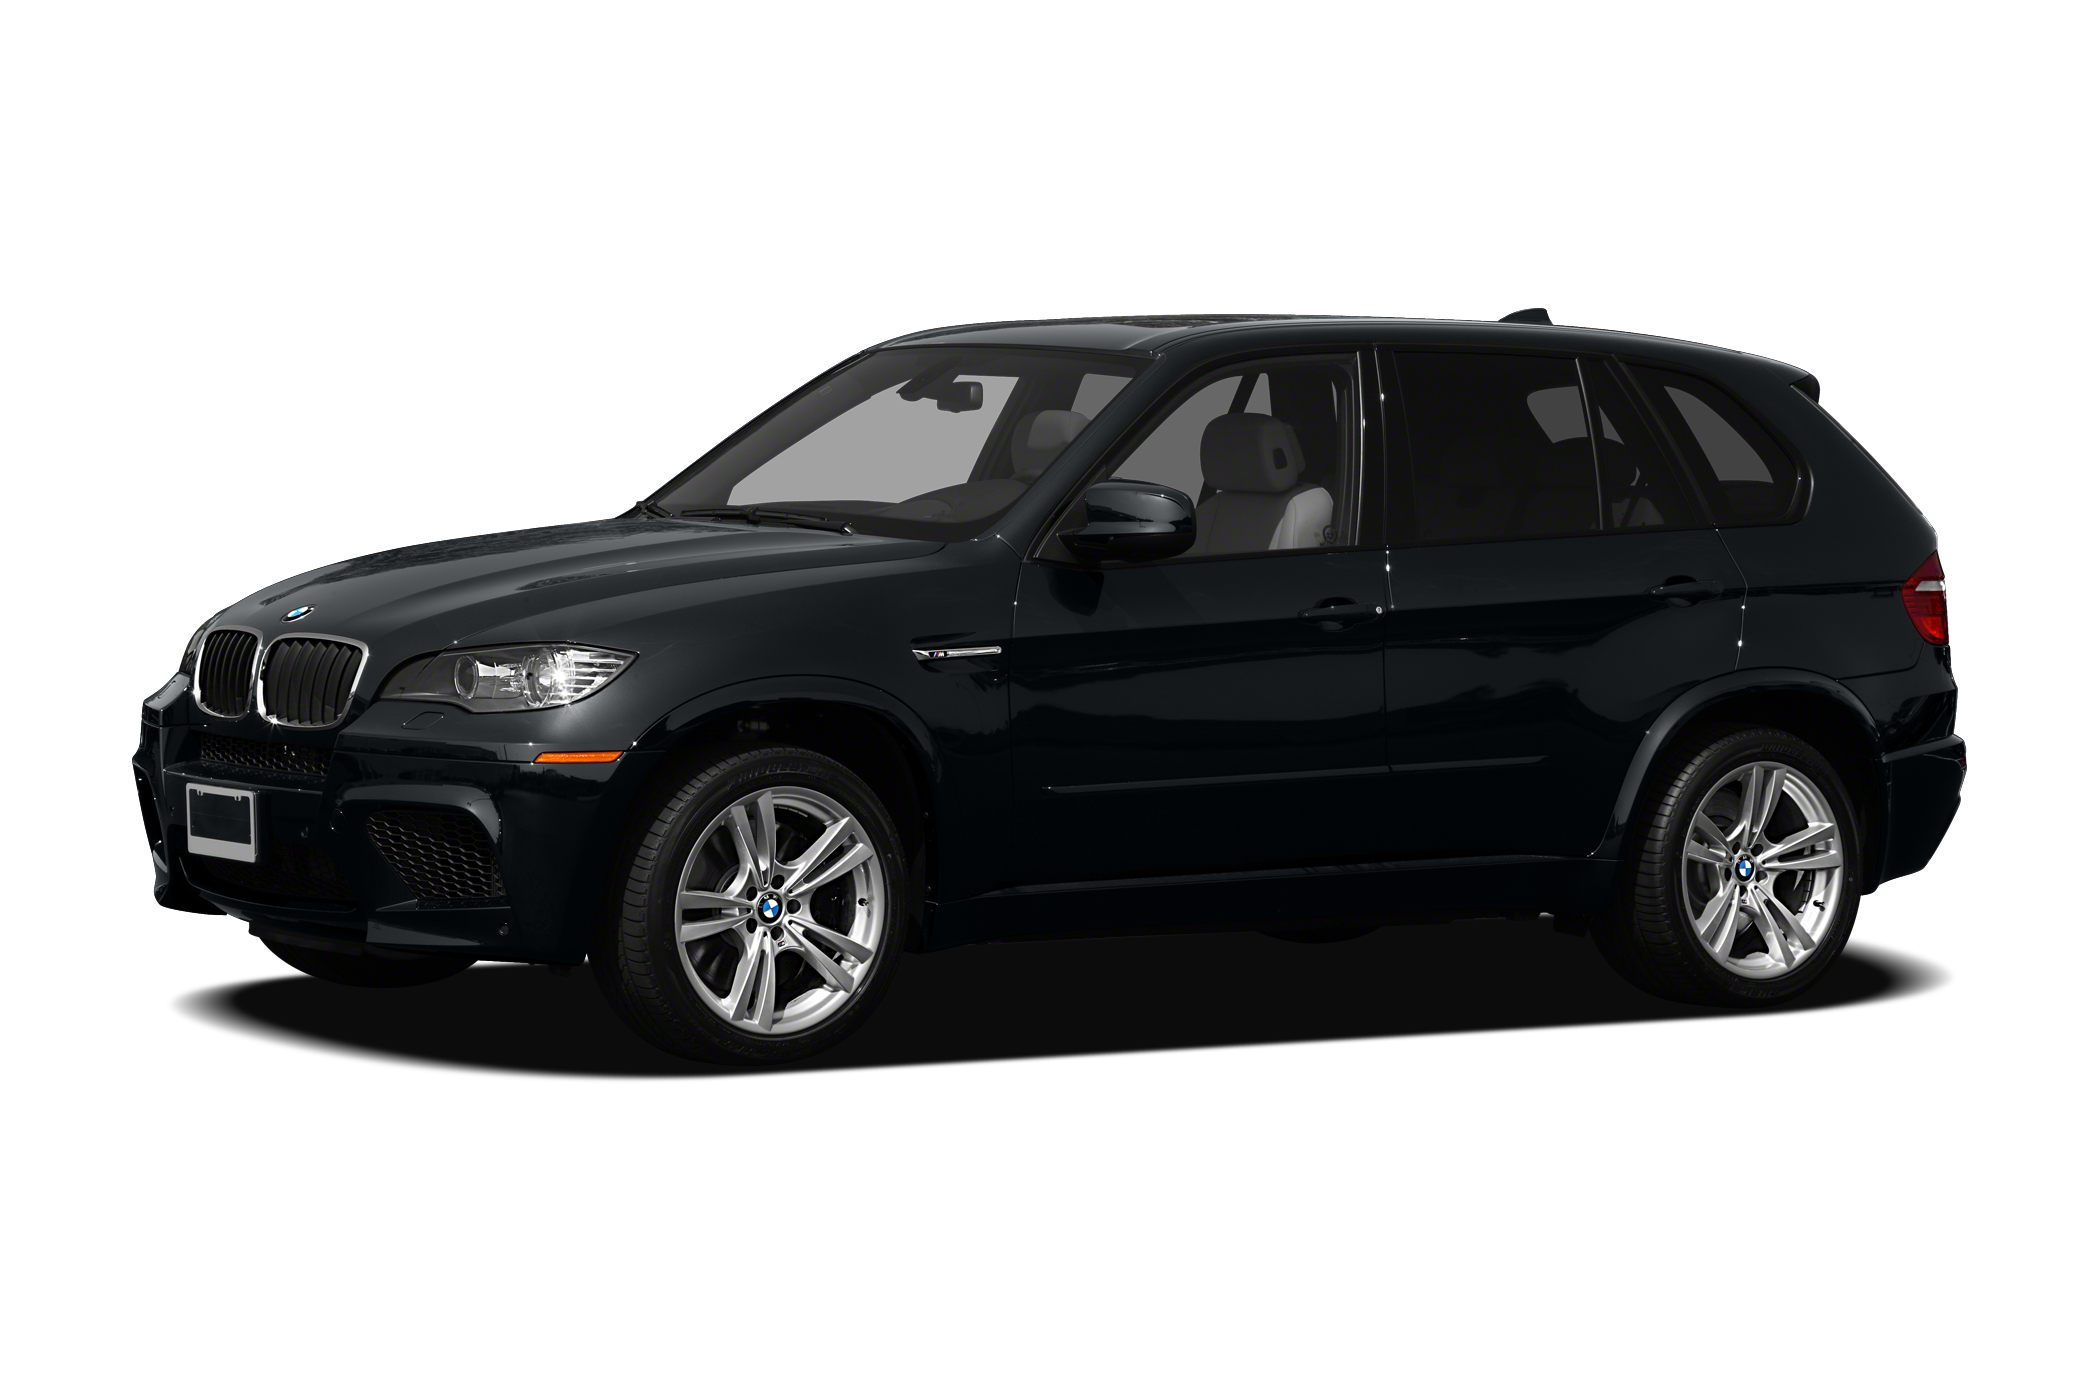 2011 BMW X5 M SUV for sale in Palm Harbor for $43,441 with 65,602 miles